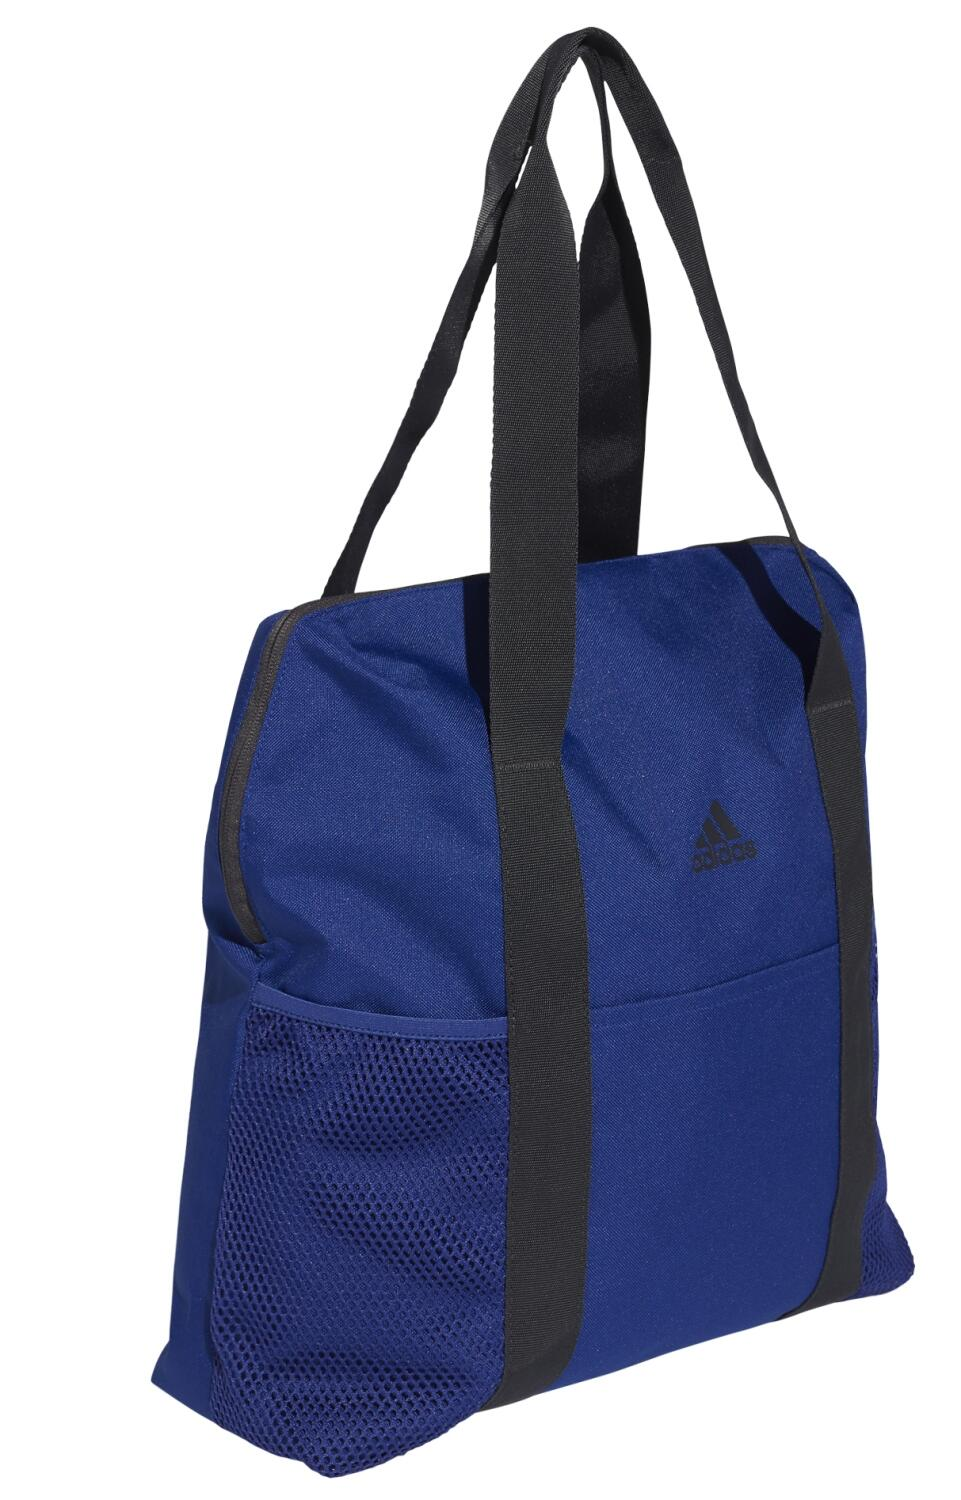 adidas-training-core-tote-umh-auml-ngetasche-farbe-mystery-ink-carbon-carbon-